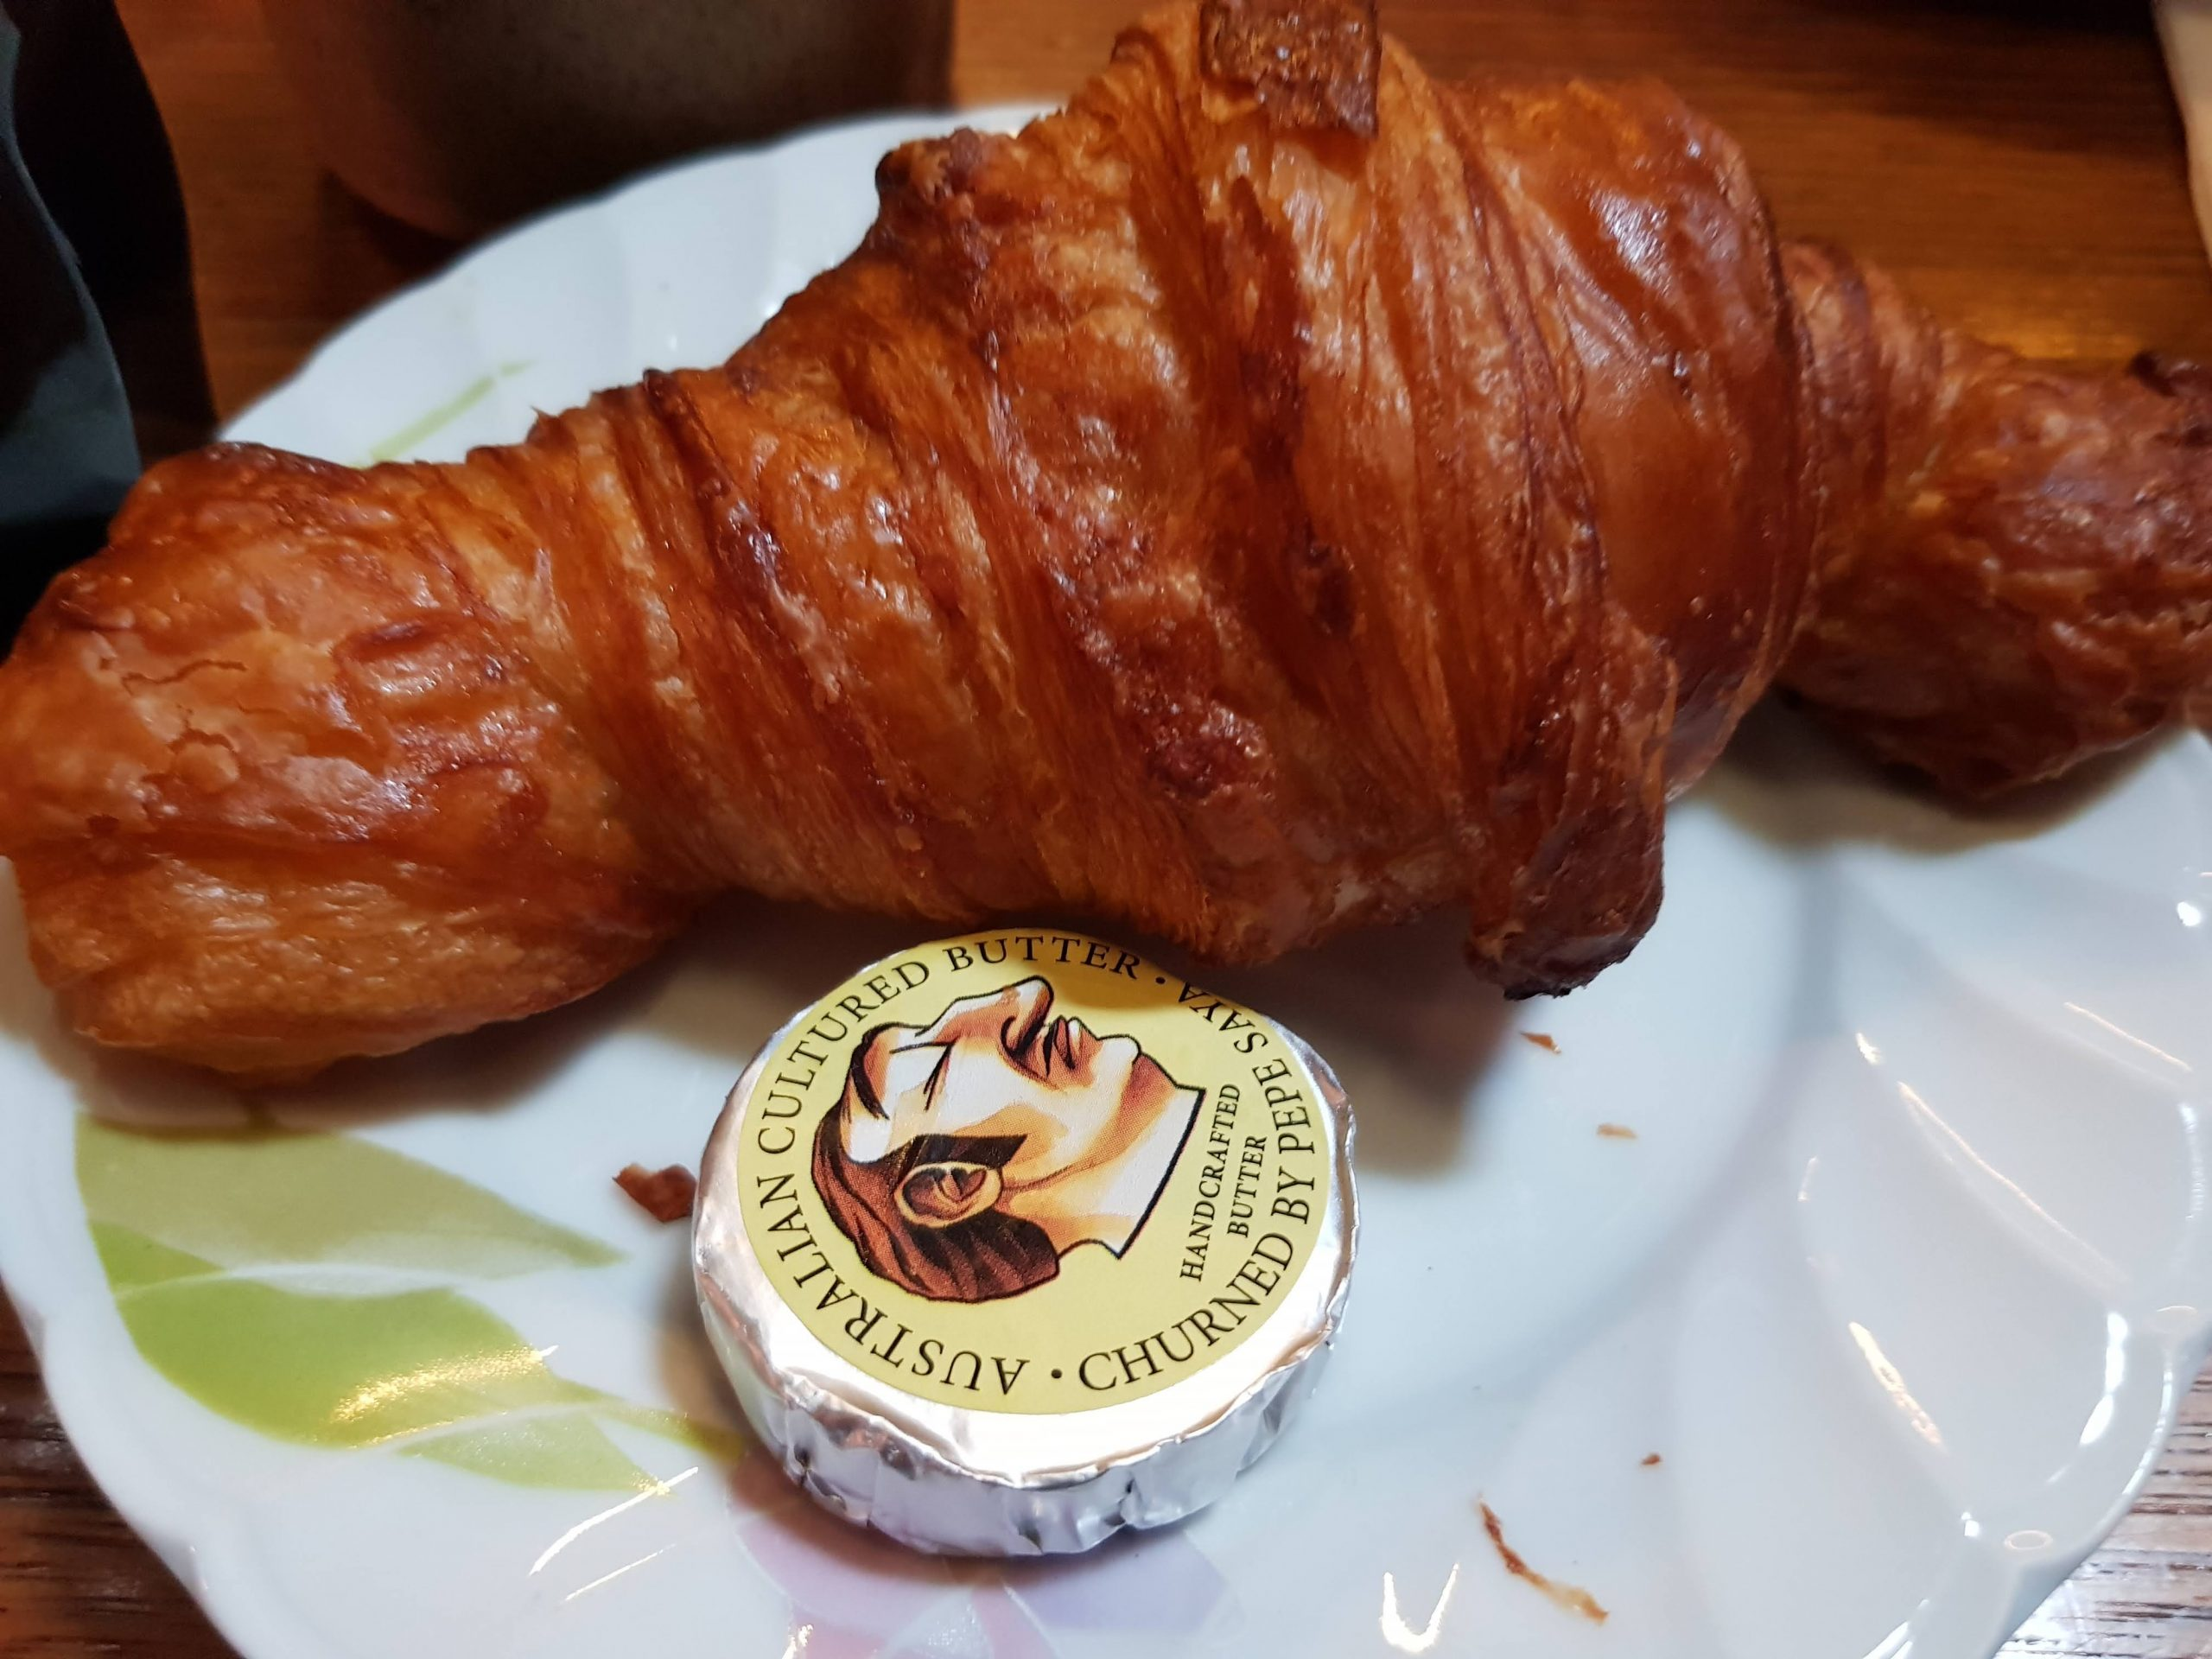 Croissant with pepe saya butter